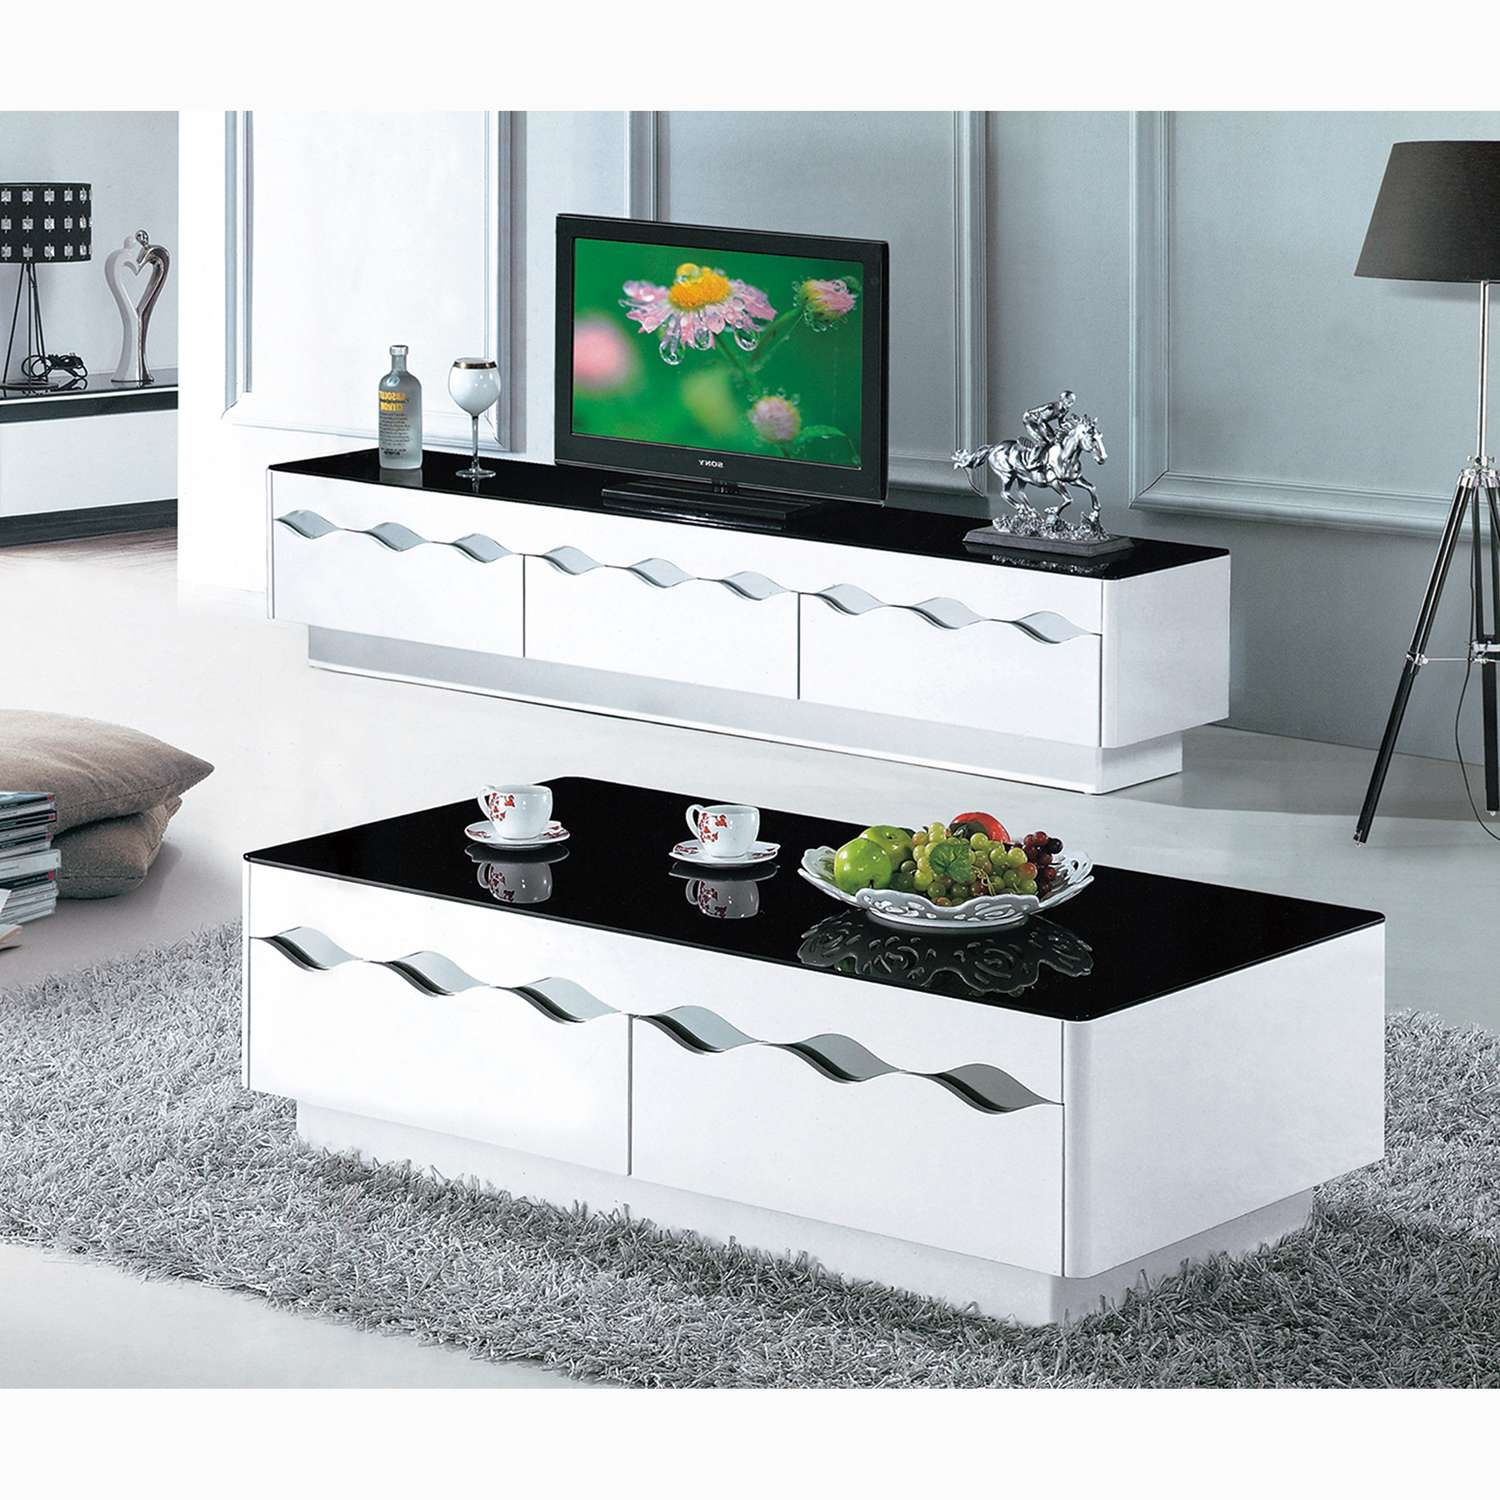 Coffee Table : Black And White Paint Glass Coffee Table Living With Regard To Tv Cabinets And Coffee Table Sets (View 4 of 20)